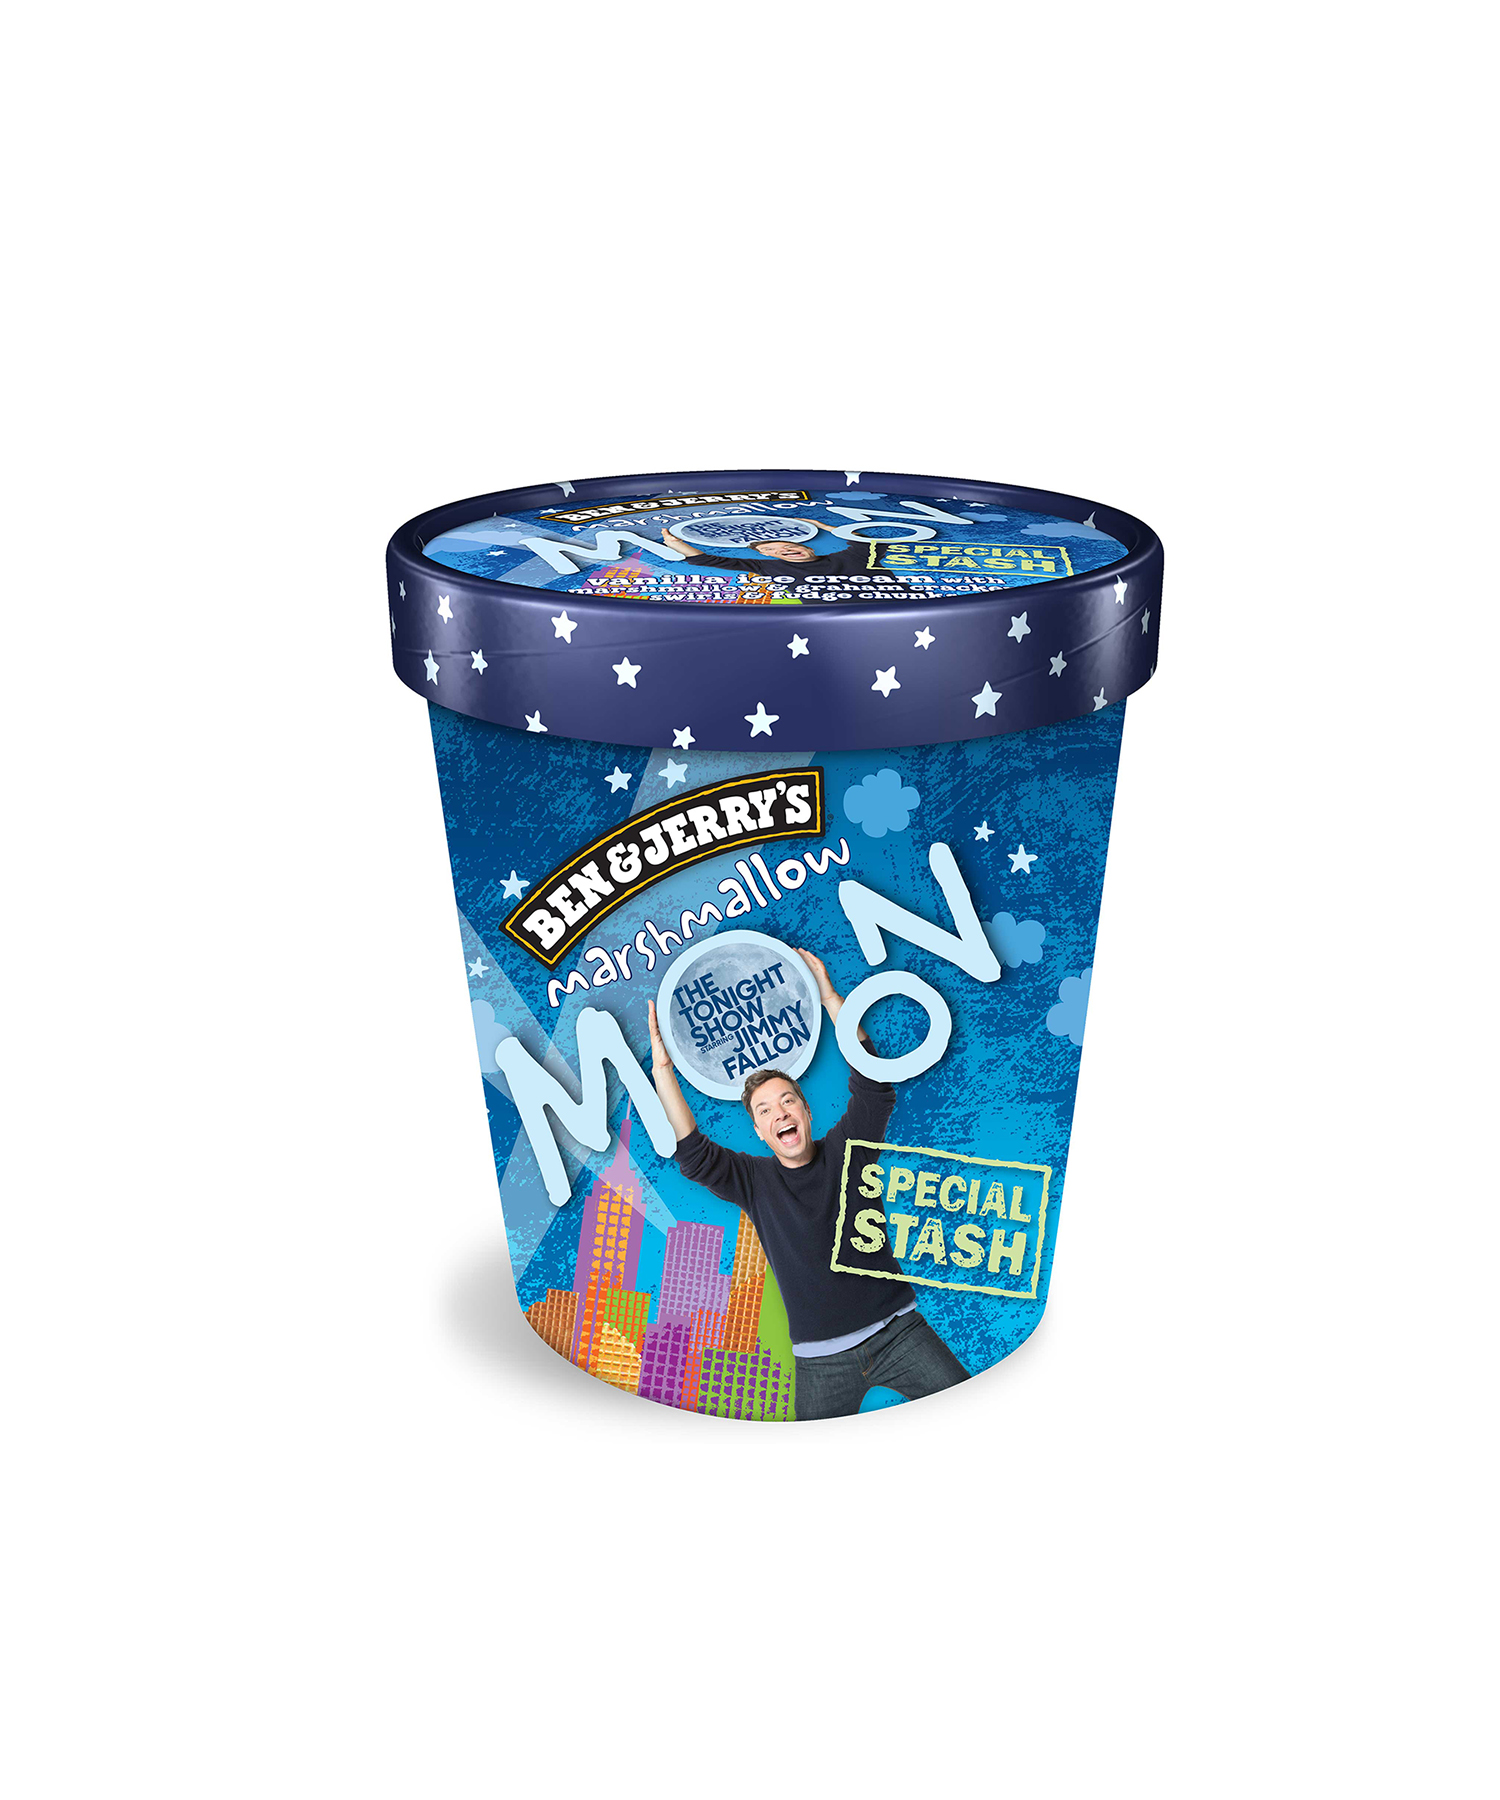 Ben & Jerry's Marshmallow Moon